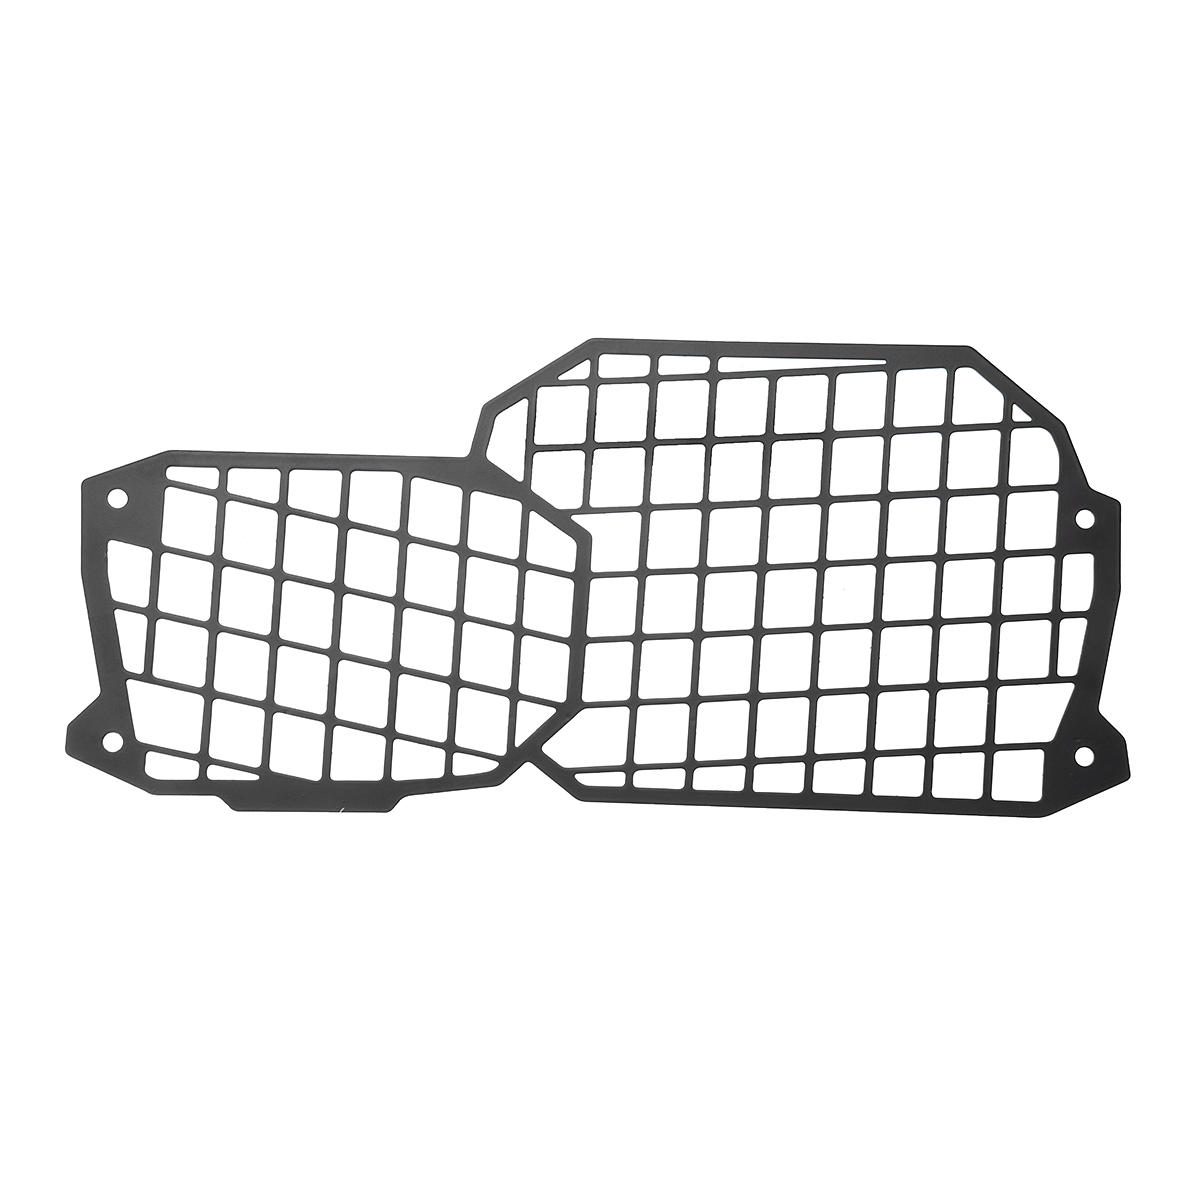 motorcycle headlight bracket lamp grill protector guard